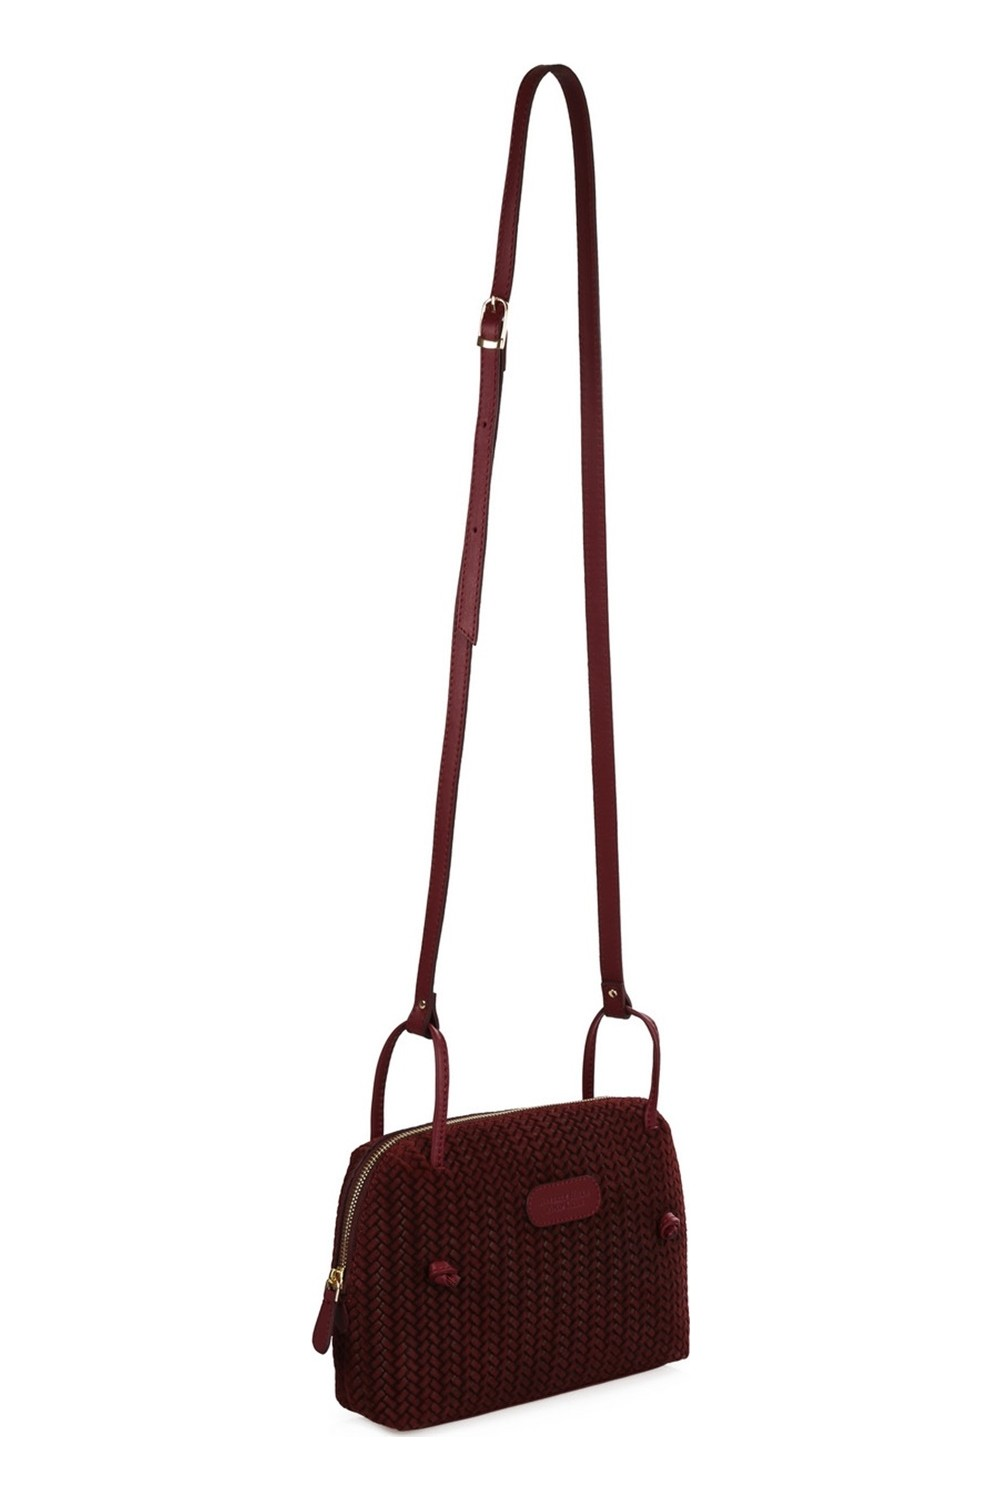 Beverly Hills Polo Club Women's Shoulder Bag 661BHP0115